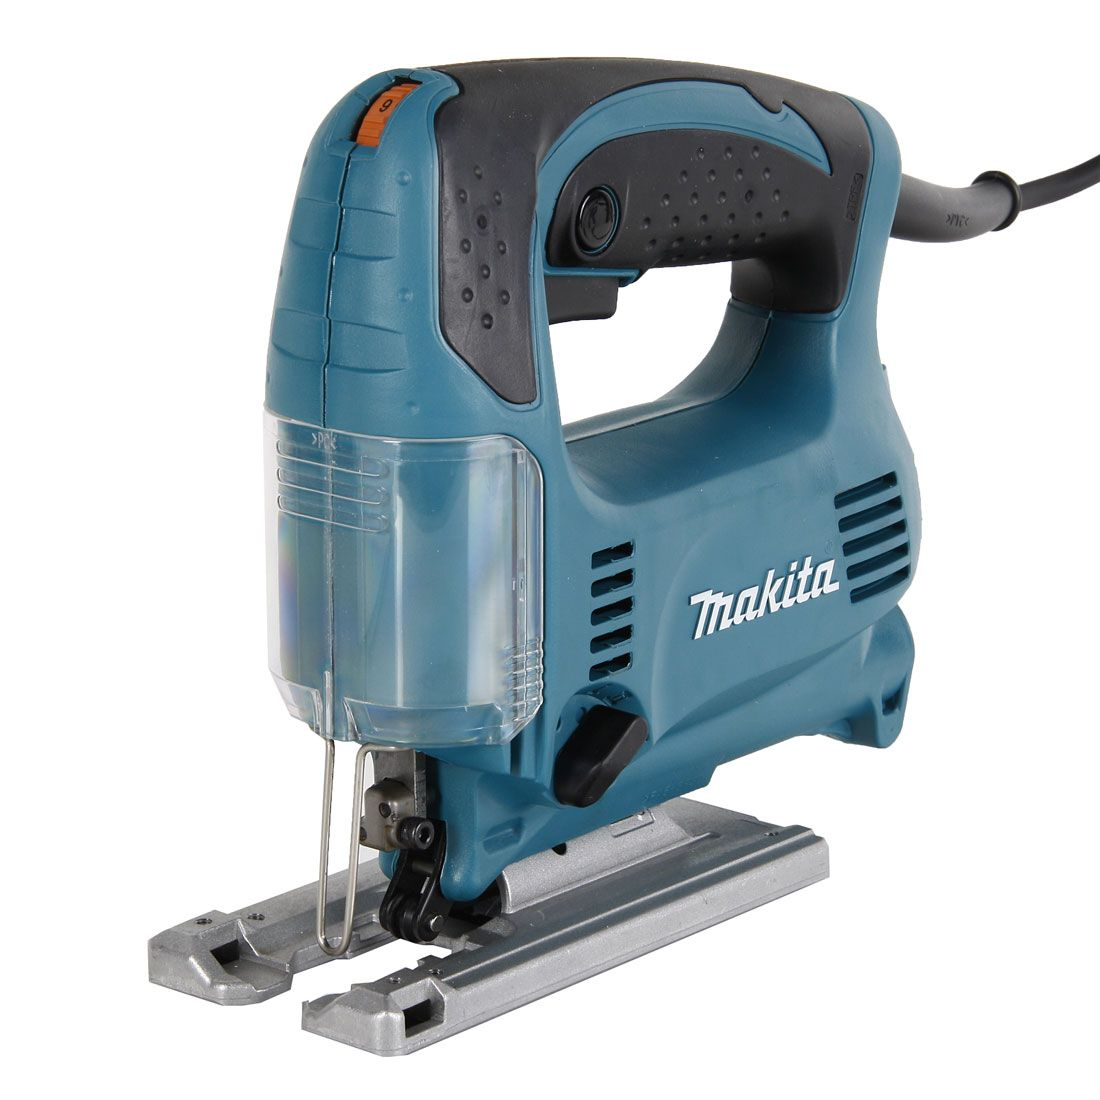 Makita Jigsaw 240v MAK4329   The Makita 4329 Jigsaw is ideally suited for light duty activities and will appeal to both the professional and the serious DIY enthusiasts.   toolforce.ie